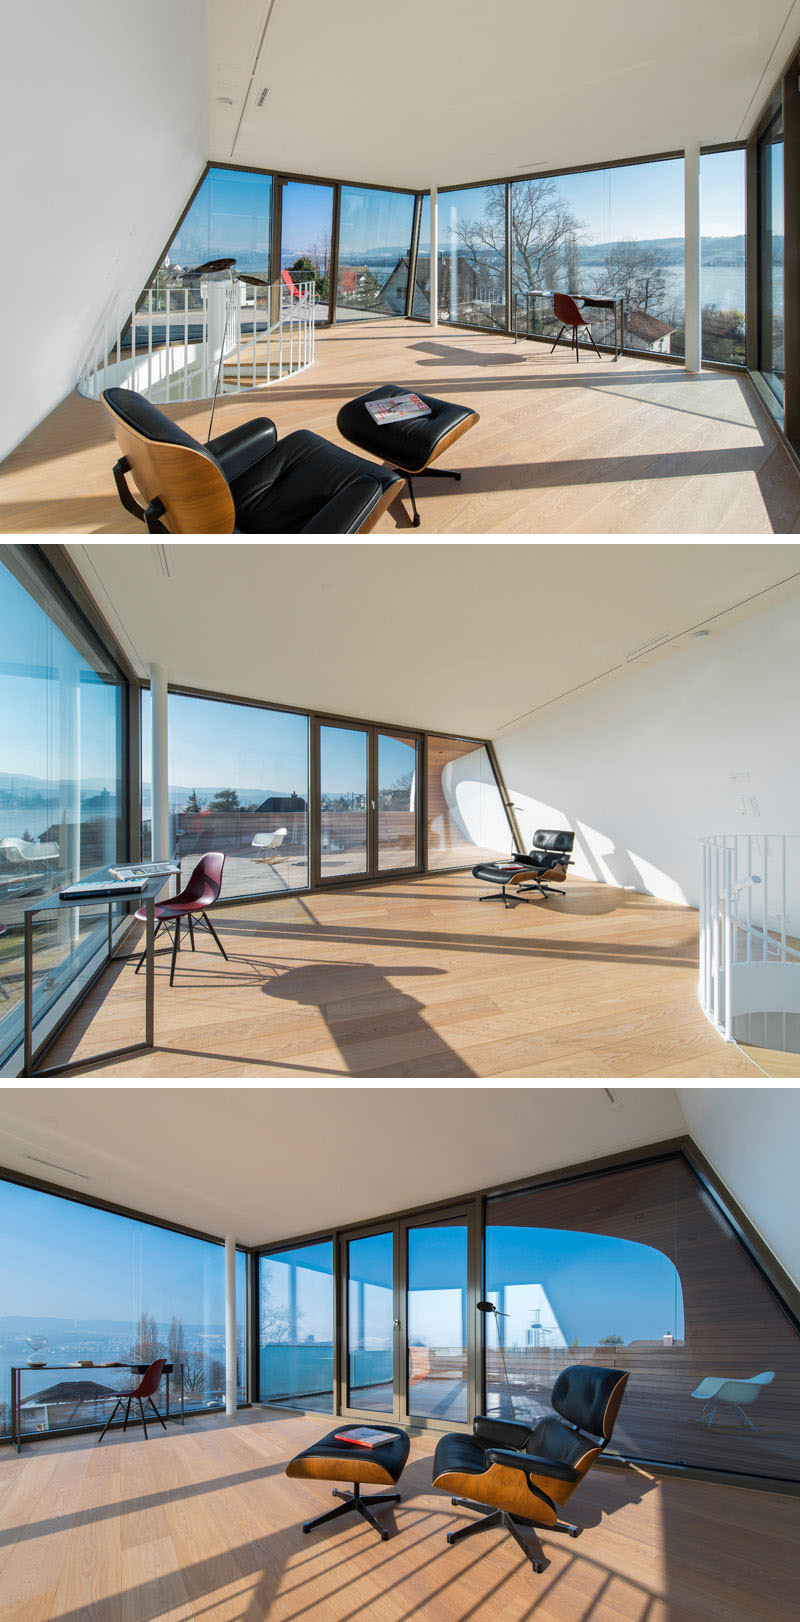 The top floor of this home, has a studio space with floor-to-ceiling windows that provide a 180 degree view of the lake.